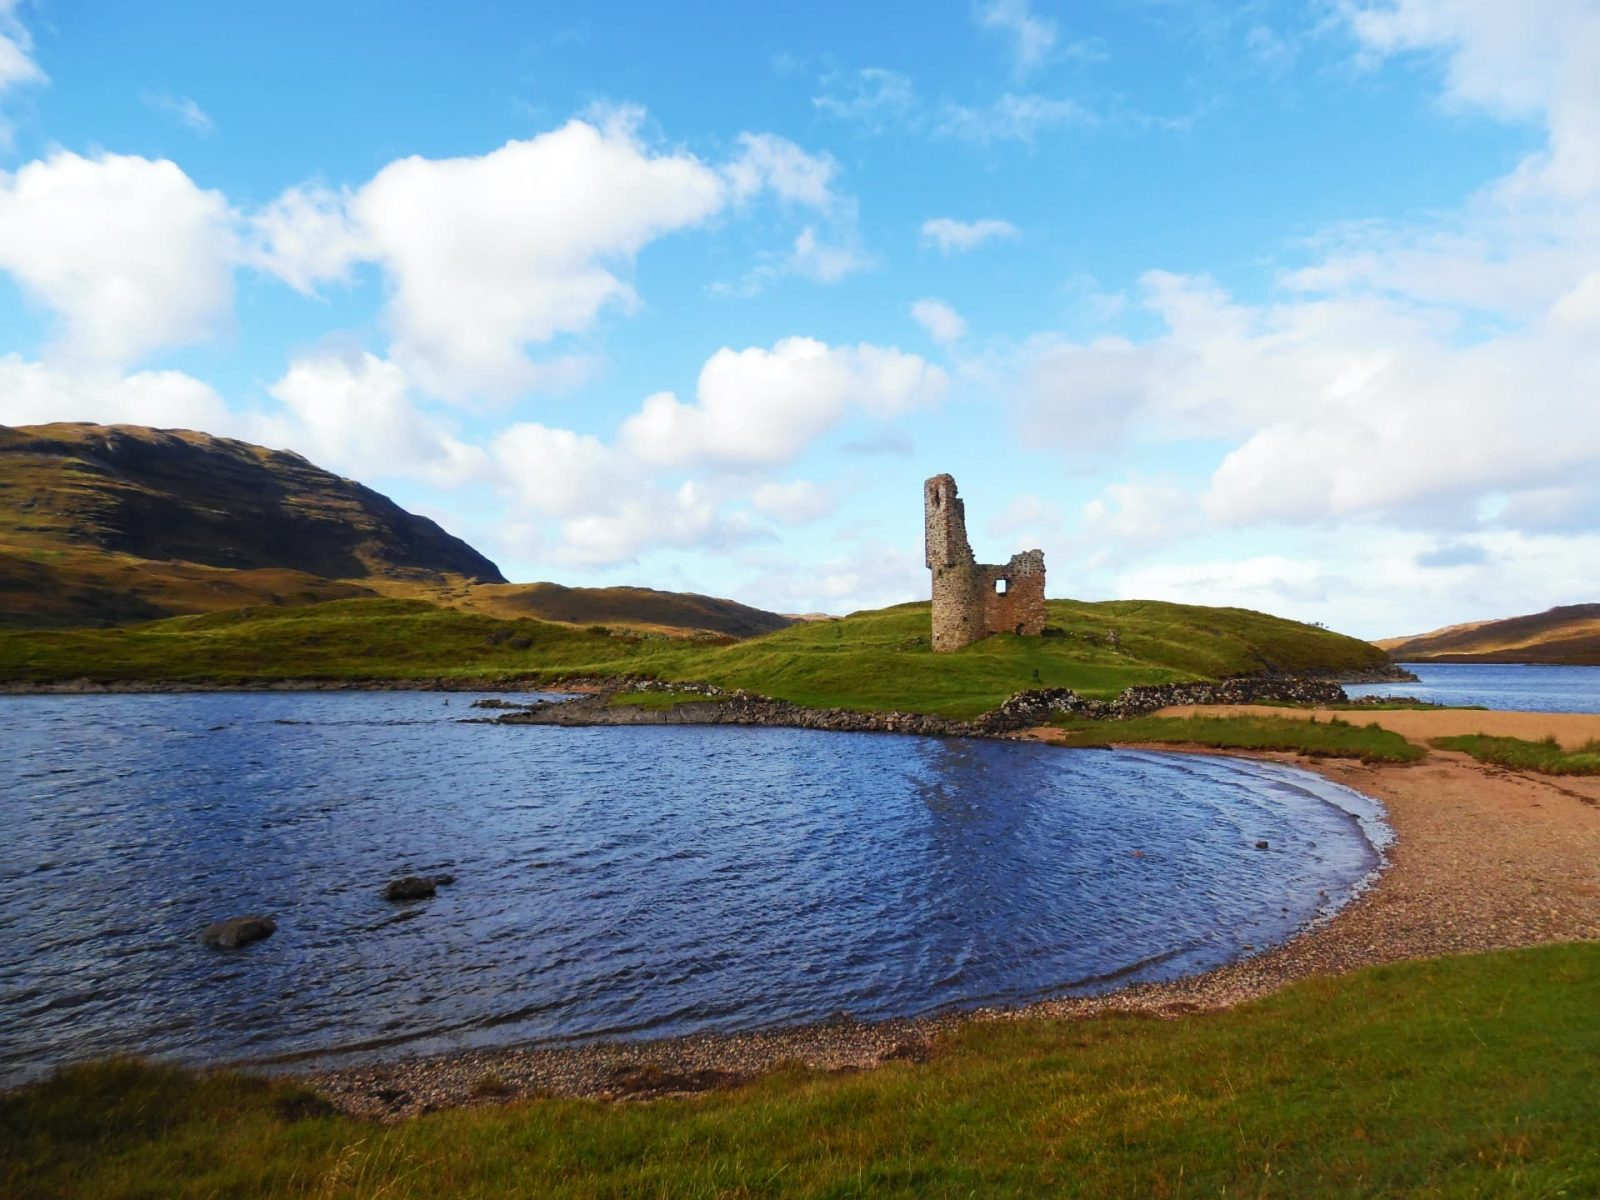 Ardvreck Castle on the shores of Loch Assynt - One of the prettiest places in Scotland!